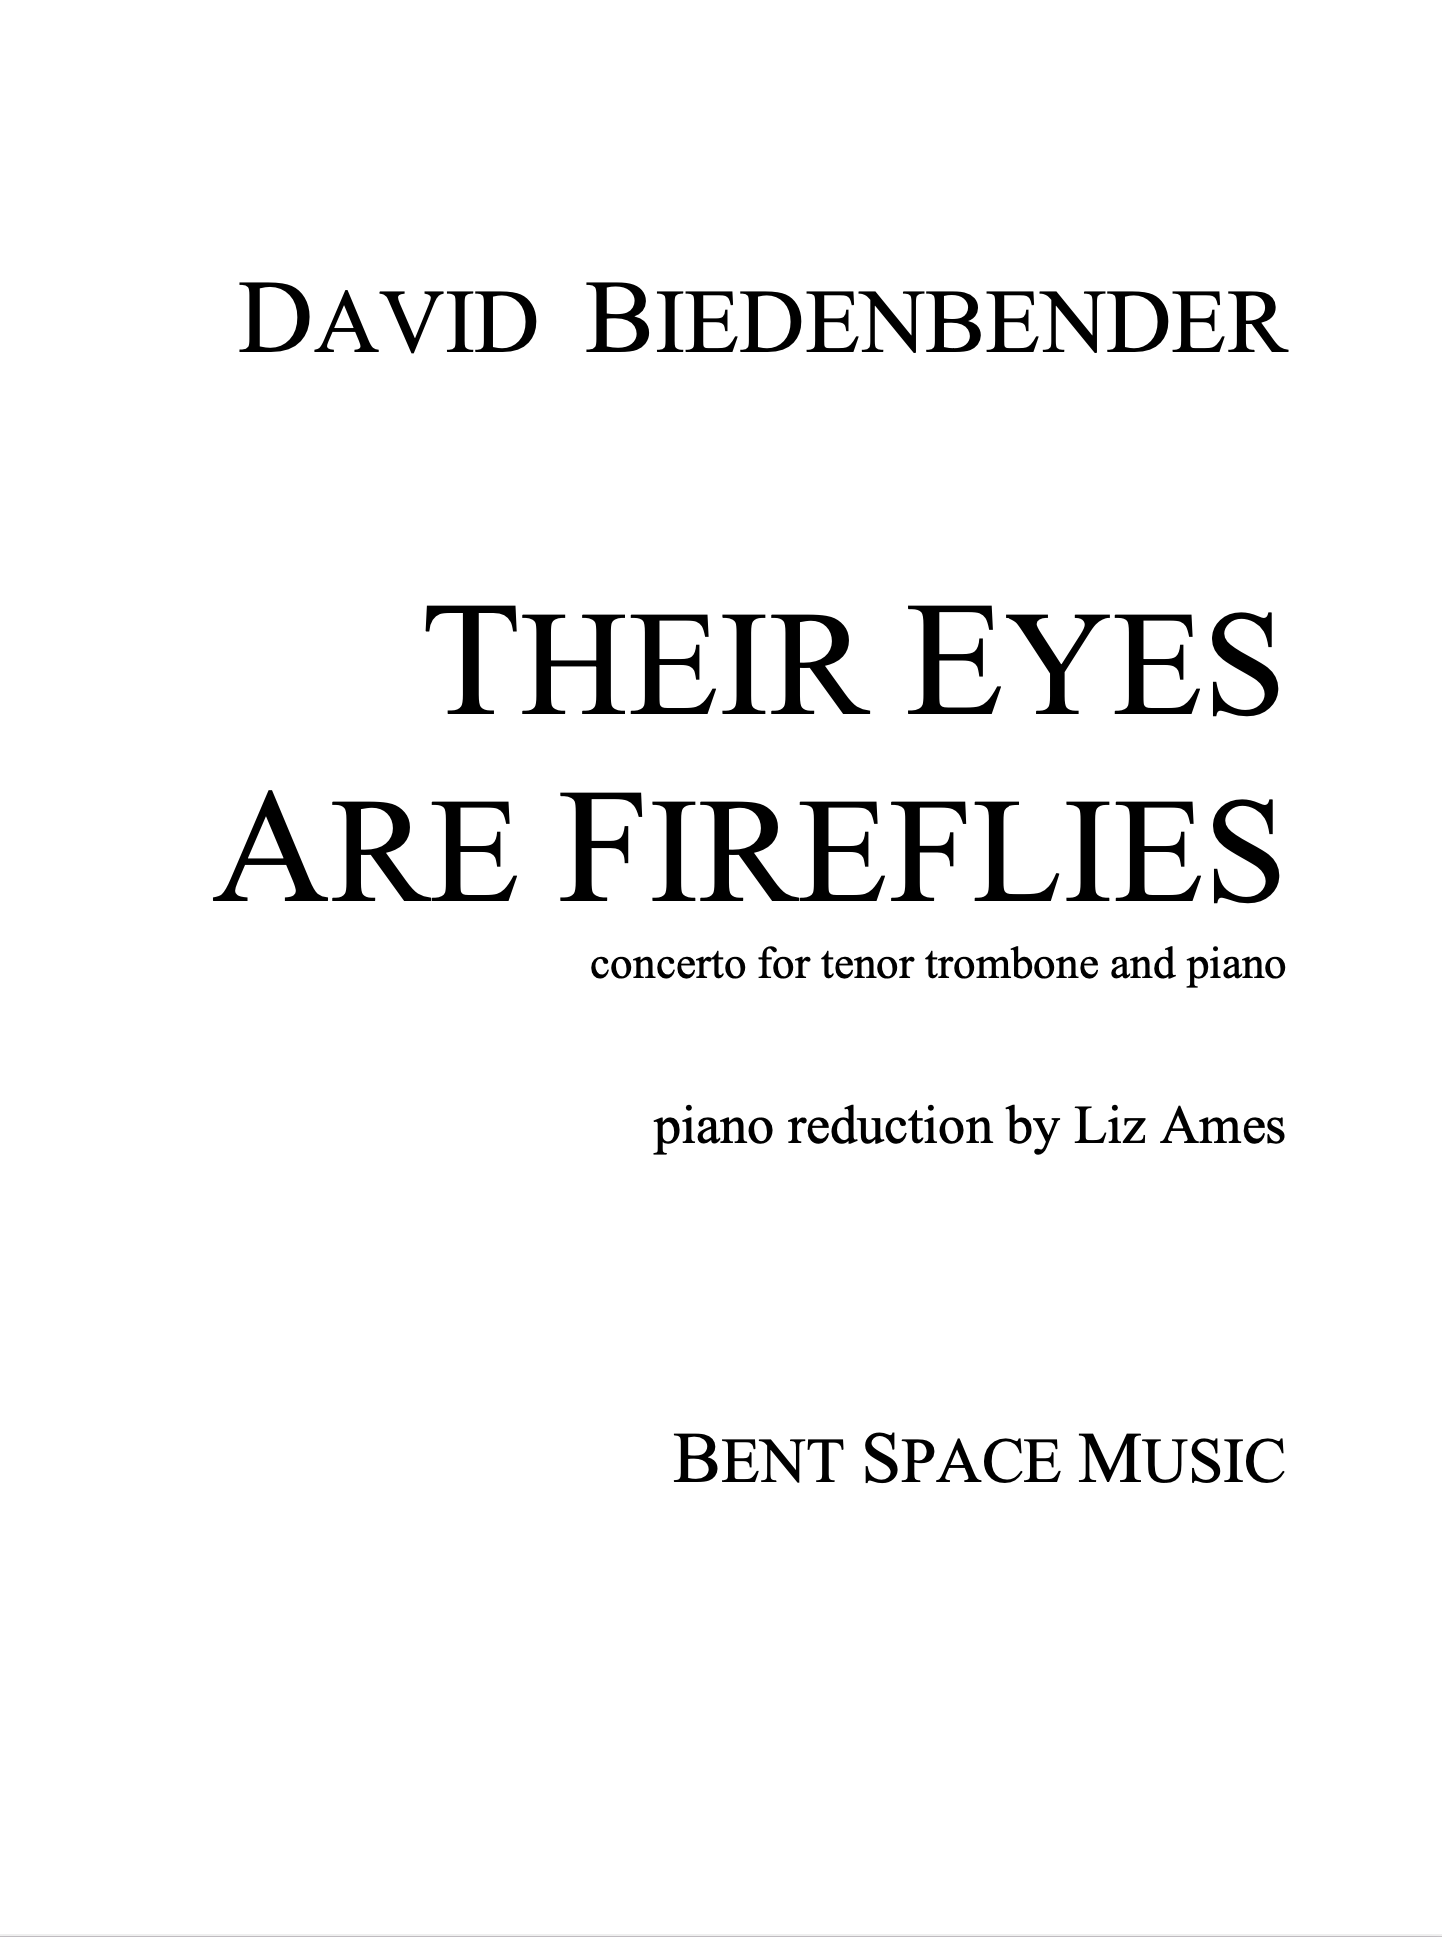 Their Eyes Are Fireflies (Piano Redution) by David Biedenbender